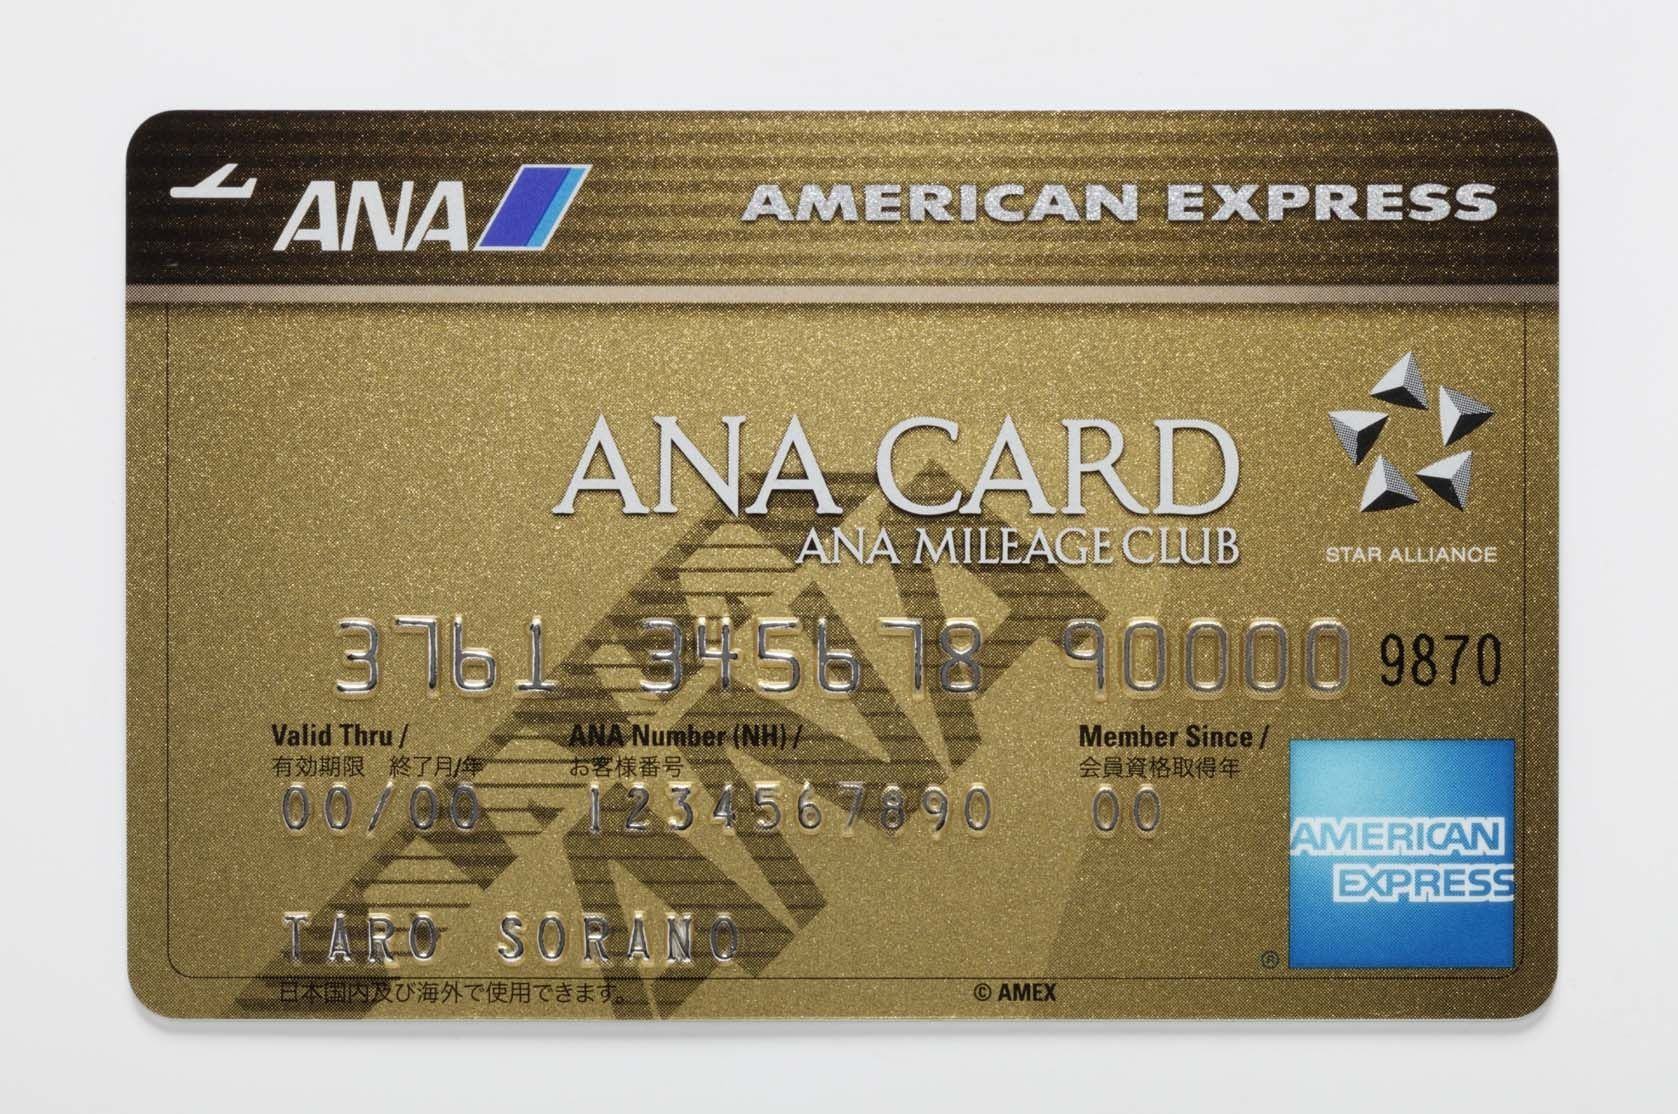 Business Gold Card American Express Customer Service Images - Card ...